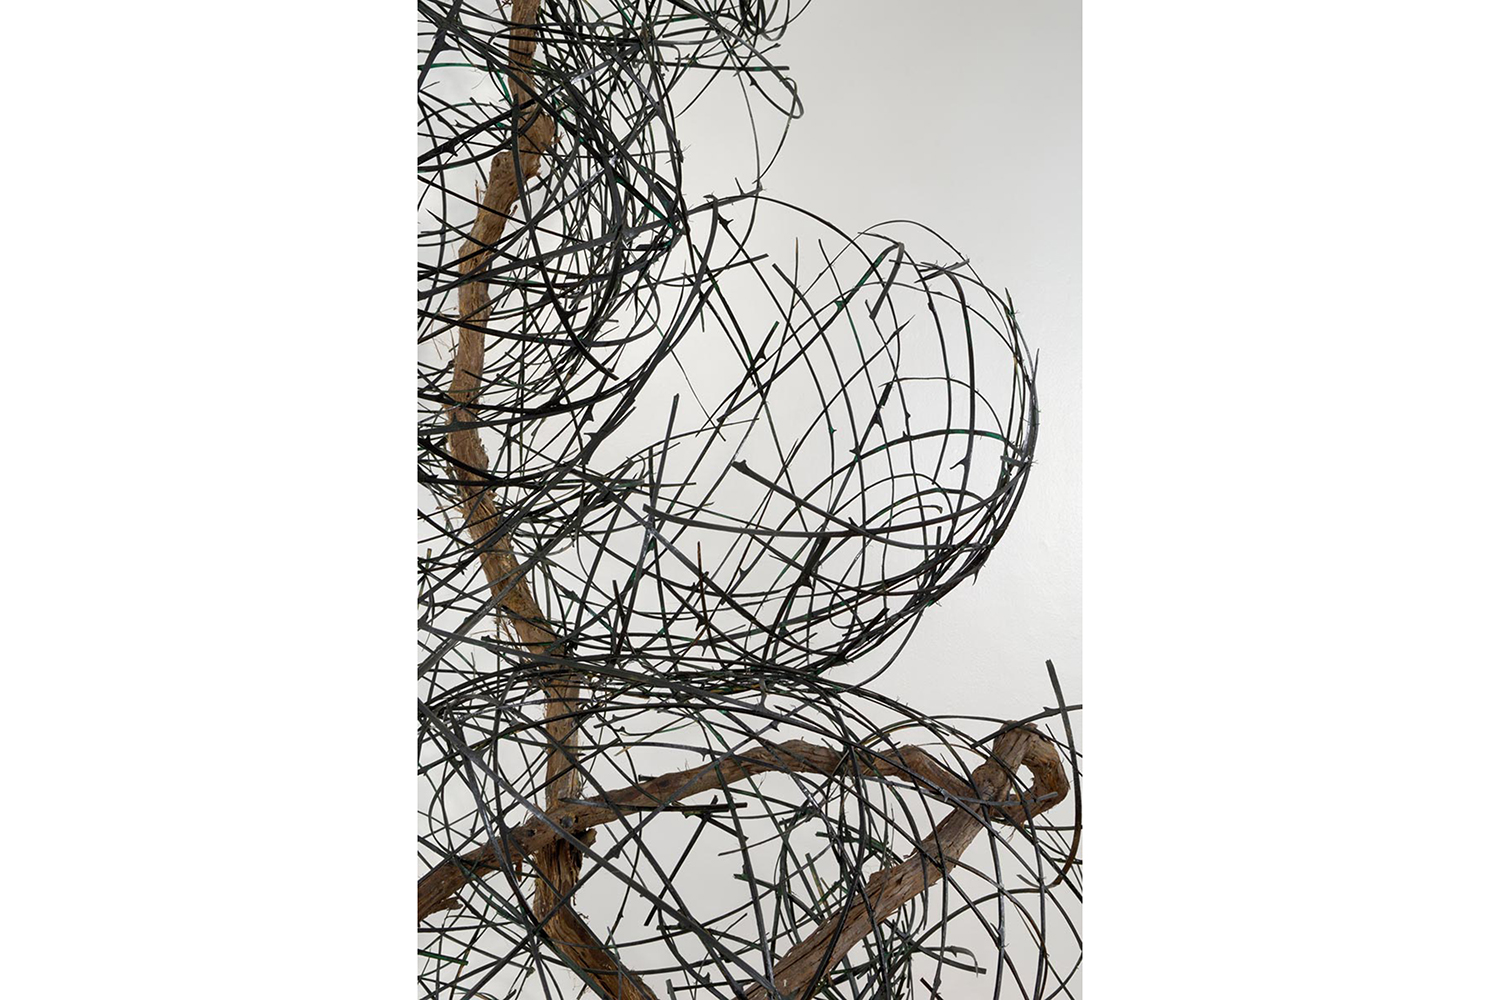 Bamboo and Vine natural art sculpture from Donna Forma